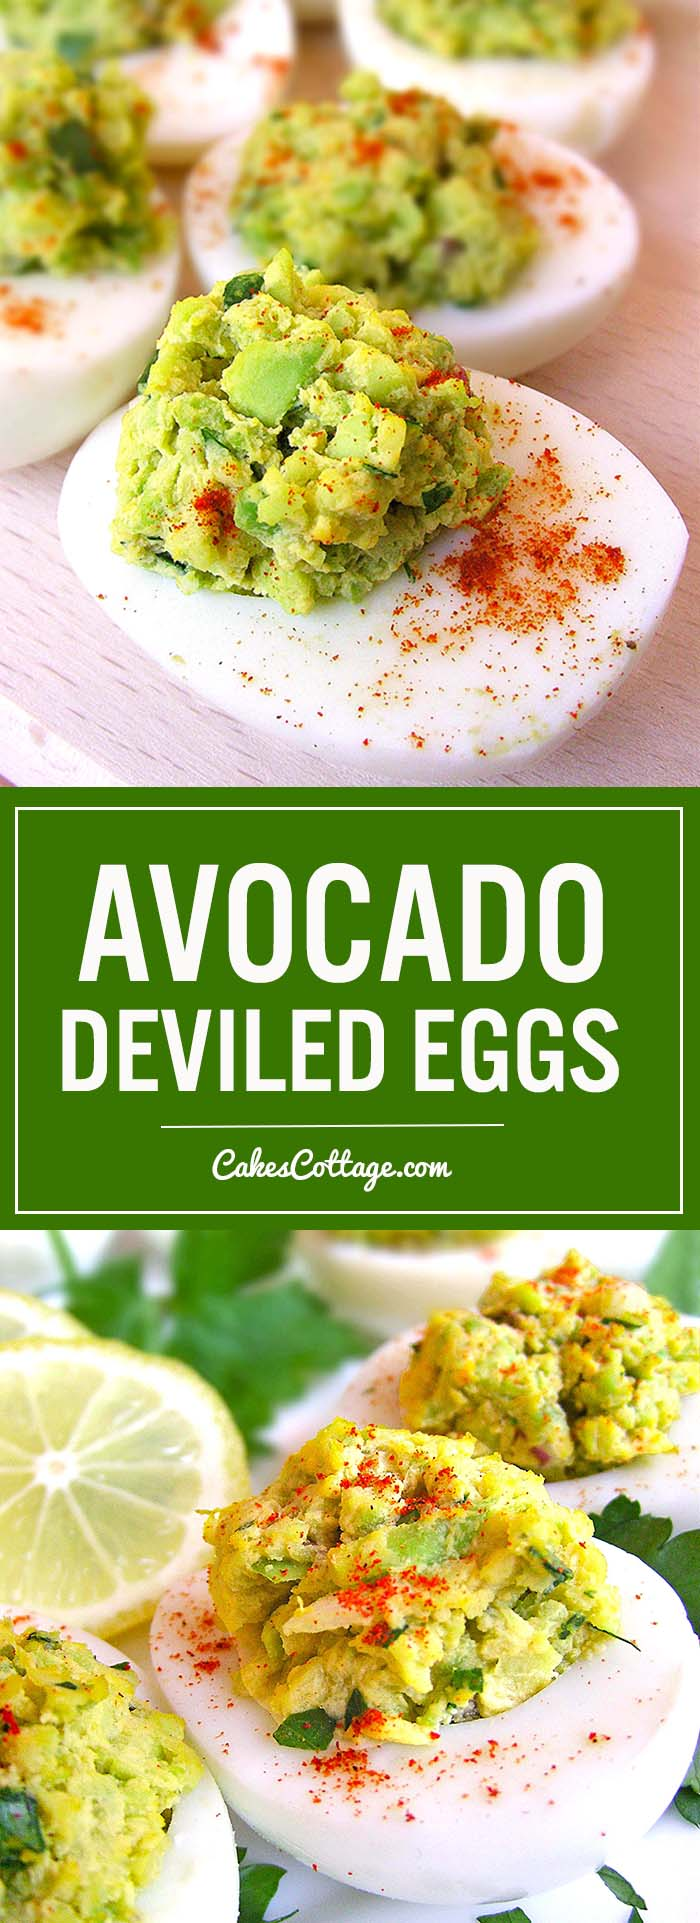 Avocado Deviled Eggs - An easy way to twist your deviled egg recipe for Easter.